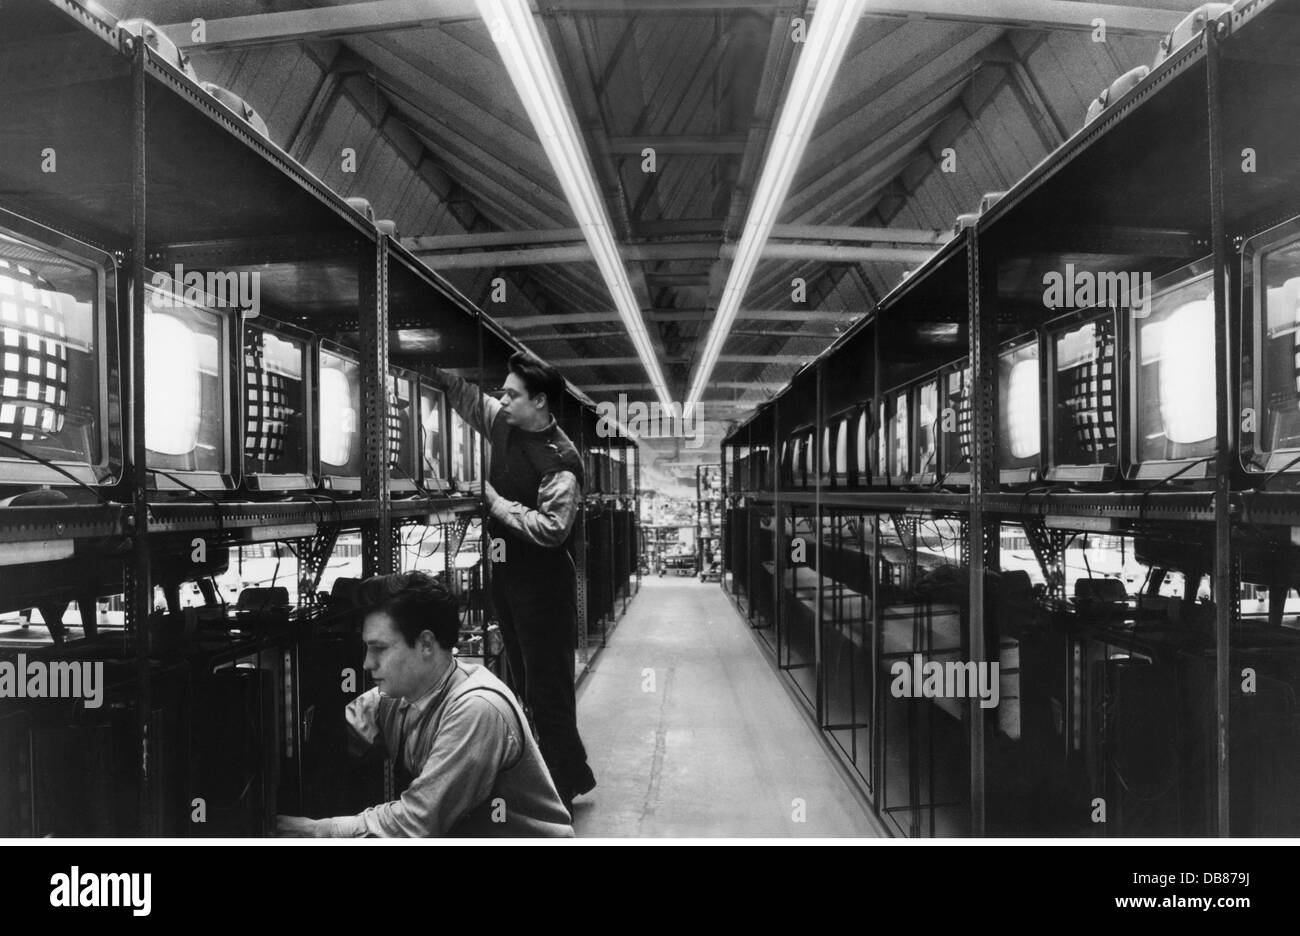 industry, radio and television sets, Telefunken, plant Hanover, televison set controlling line during the night - Stock Image